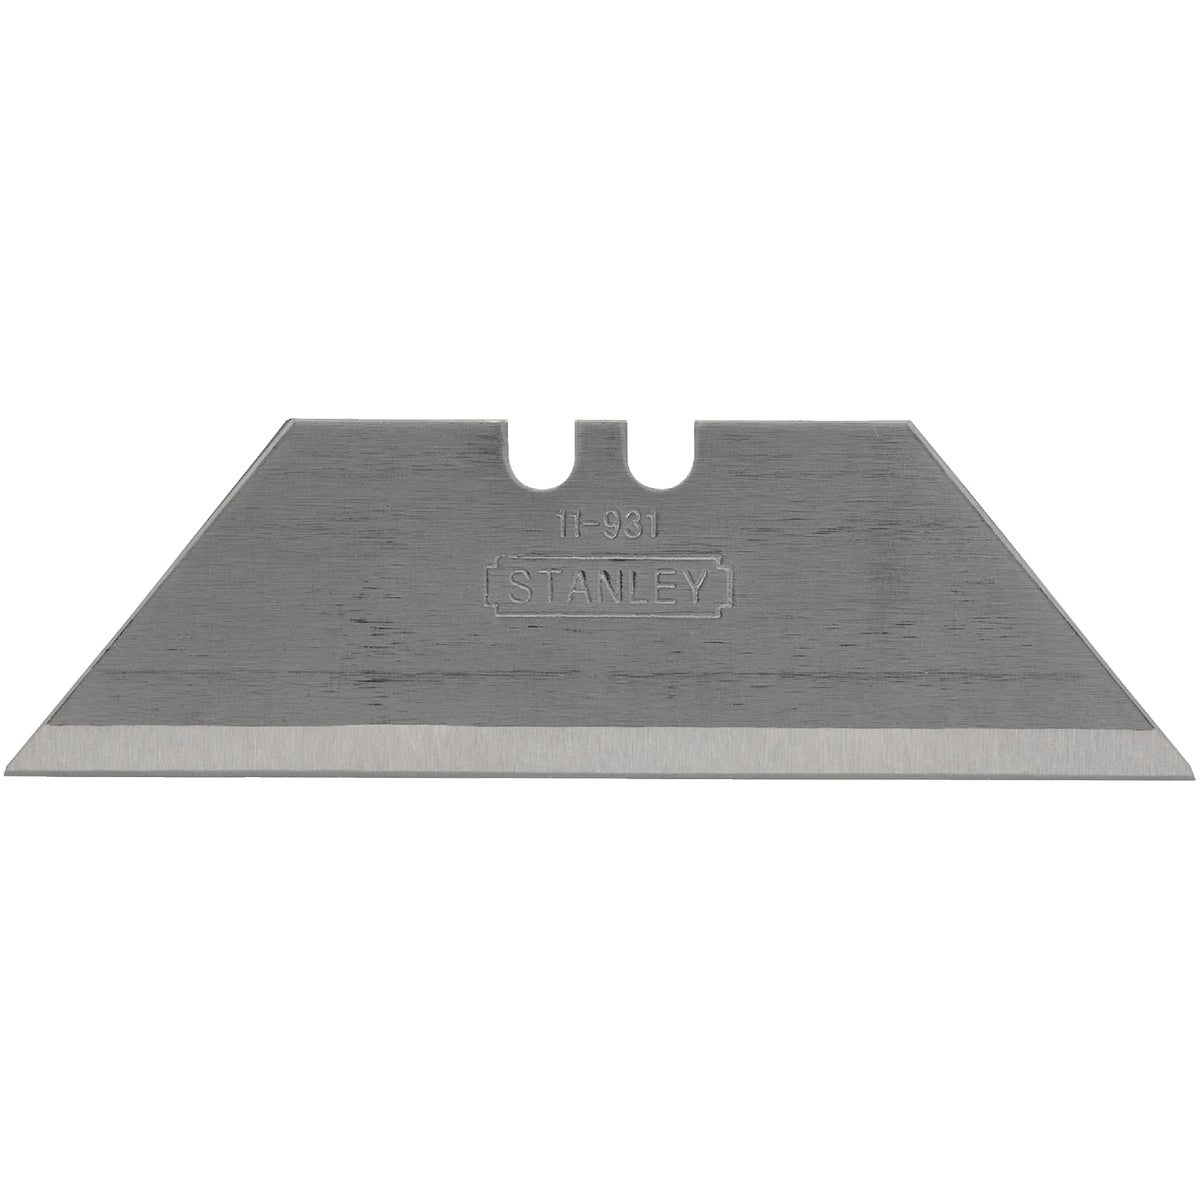 5PK UTILITY BLADE - 11-931 by Stanley Tools